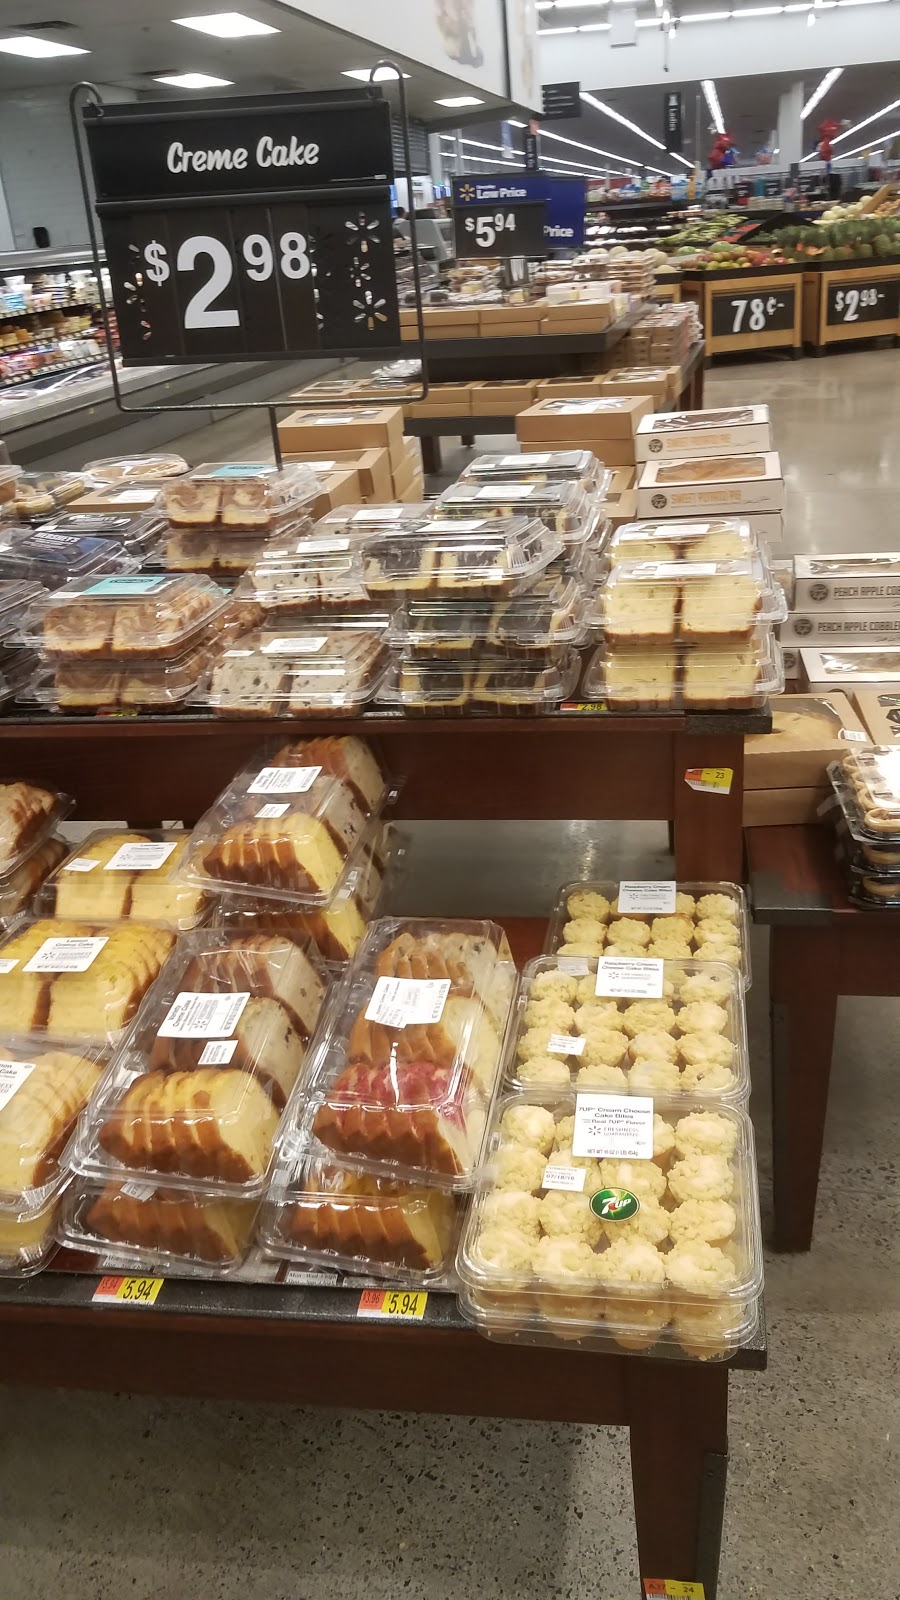 Walmart Bakery - bakery  | Photo 5 of 10 | Address: 279 Troy Rd, Rensselaer, NY 12144, USA | Phone: (518) 238-6054